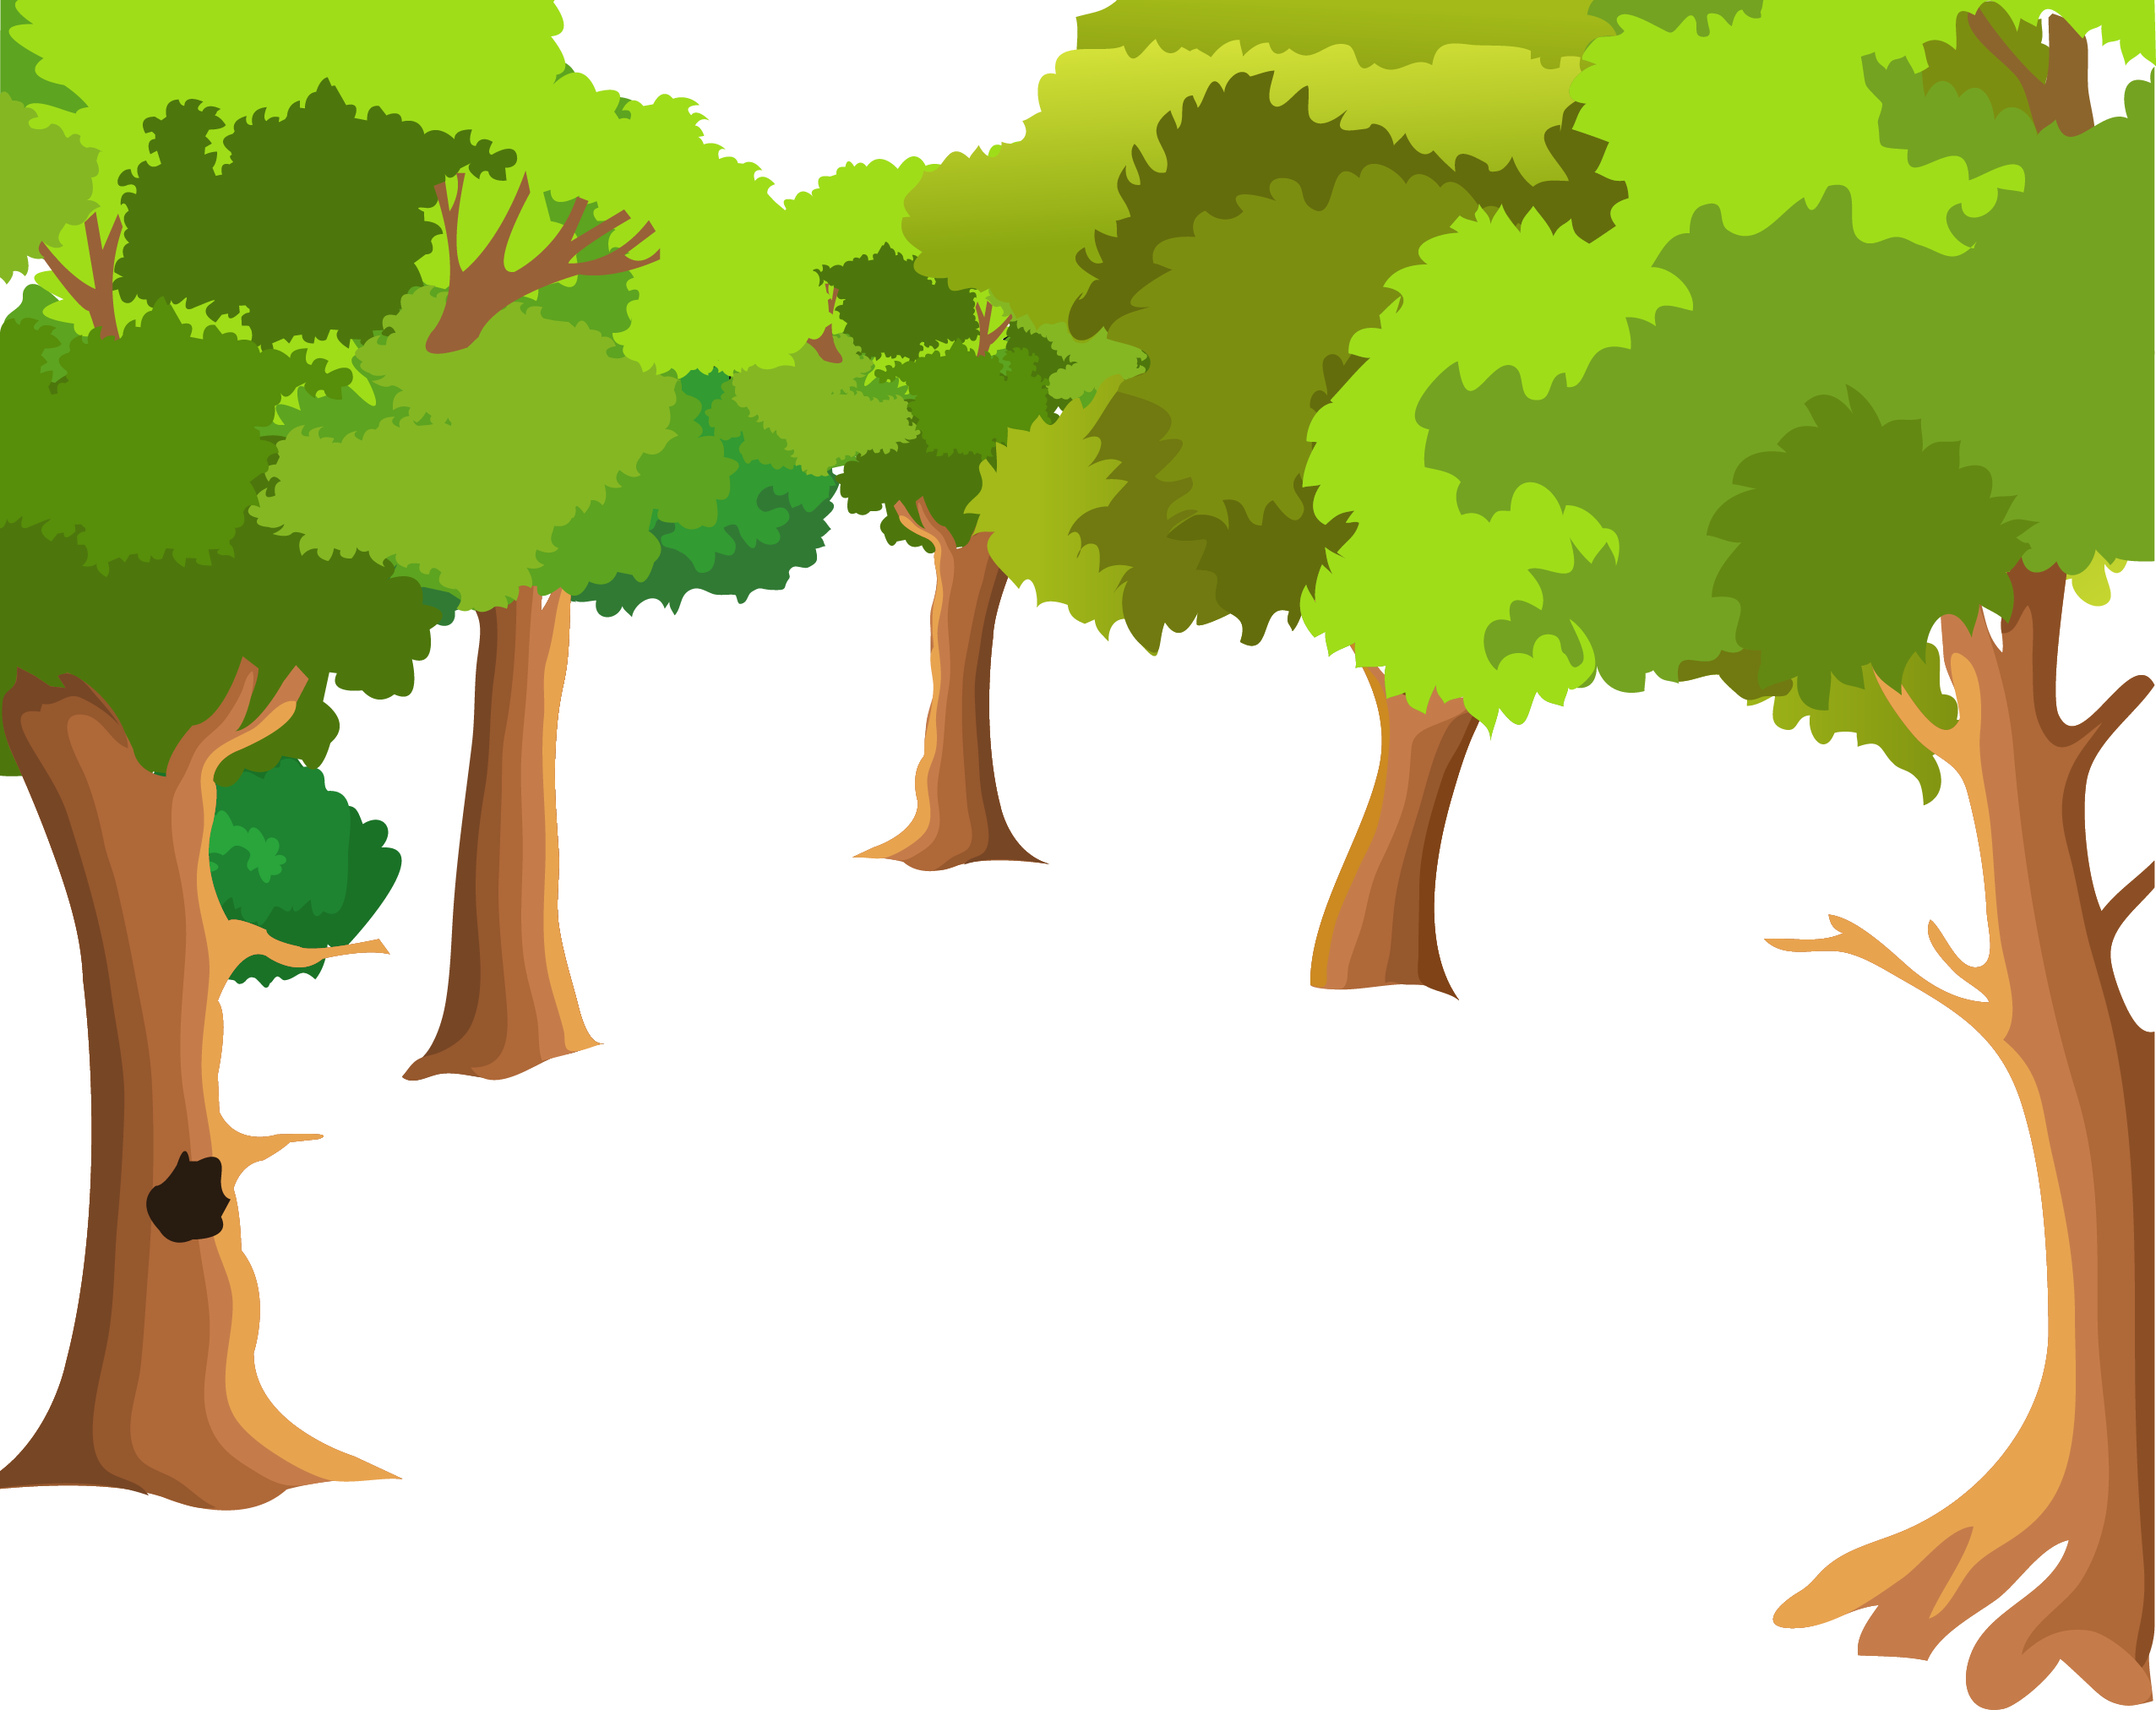 Forest background clipart drawing. Landscape painting cartoon tree